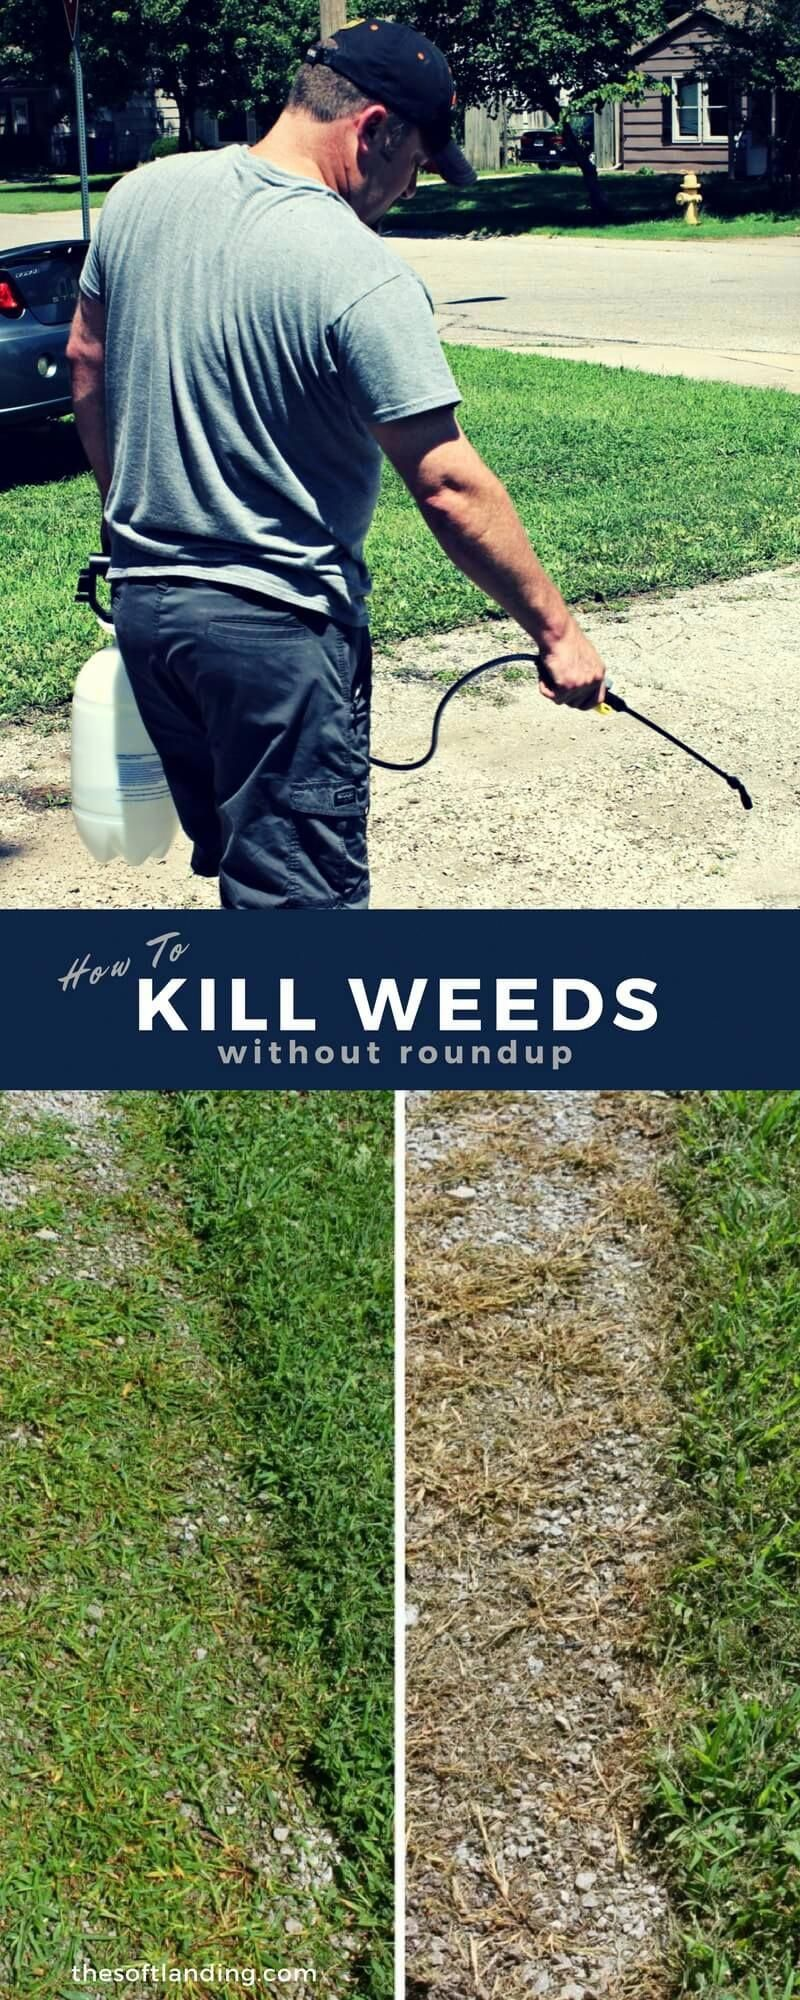 Many people grab a bottle of roundup and head out to kill weeds